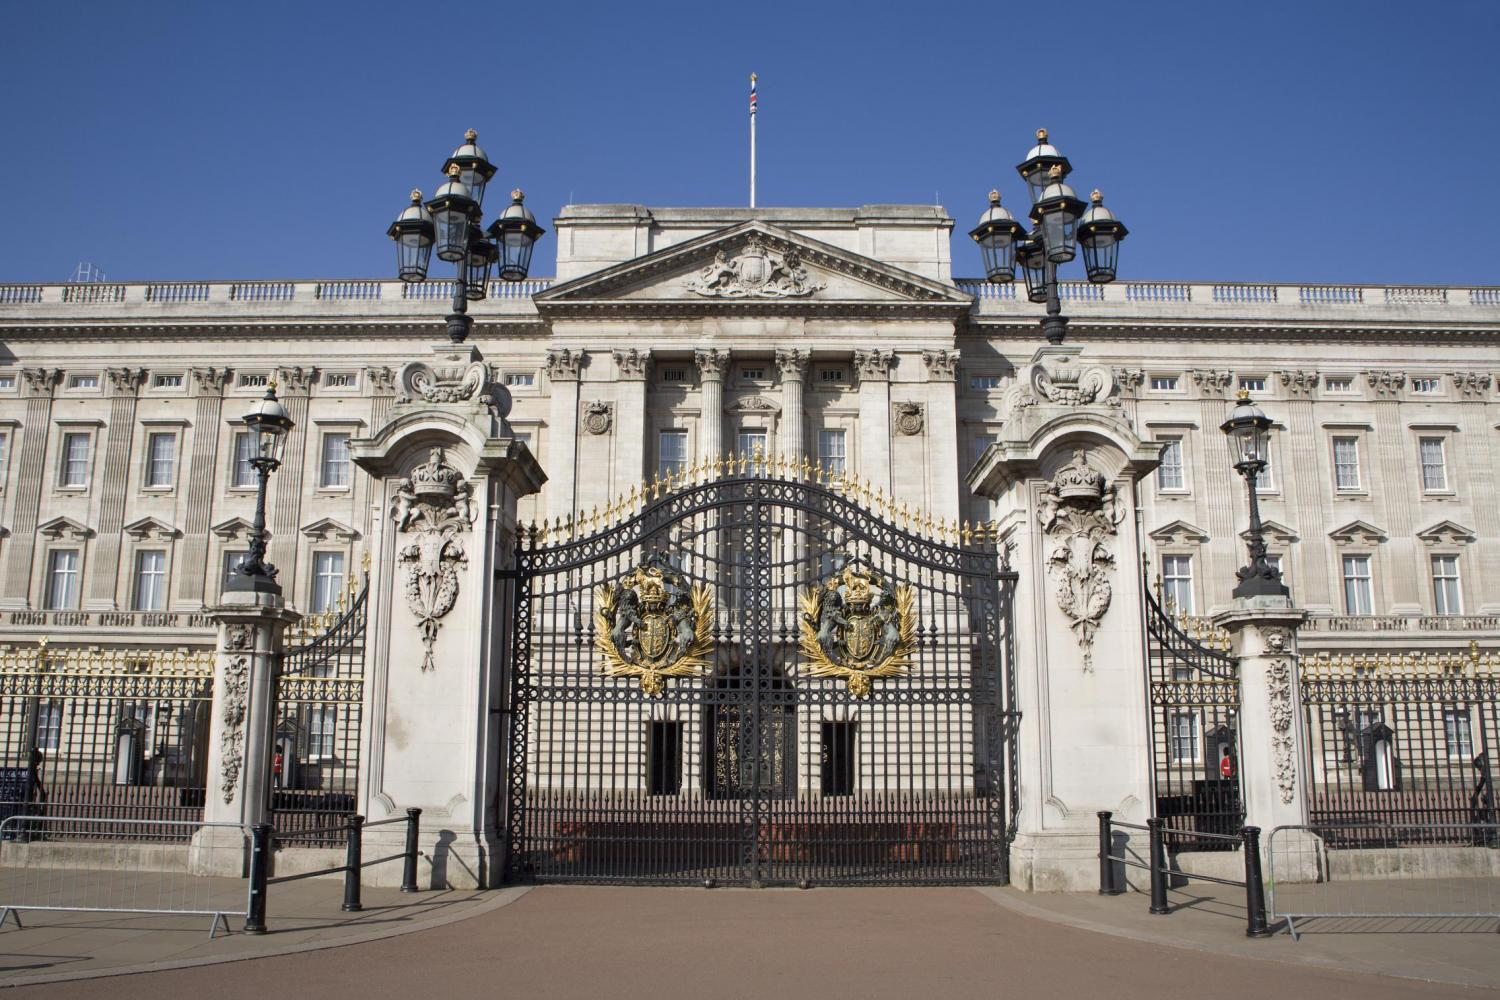 Buckingham Palace London, Royal London Tour and Visit Inside Buckingham Palace